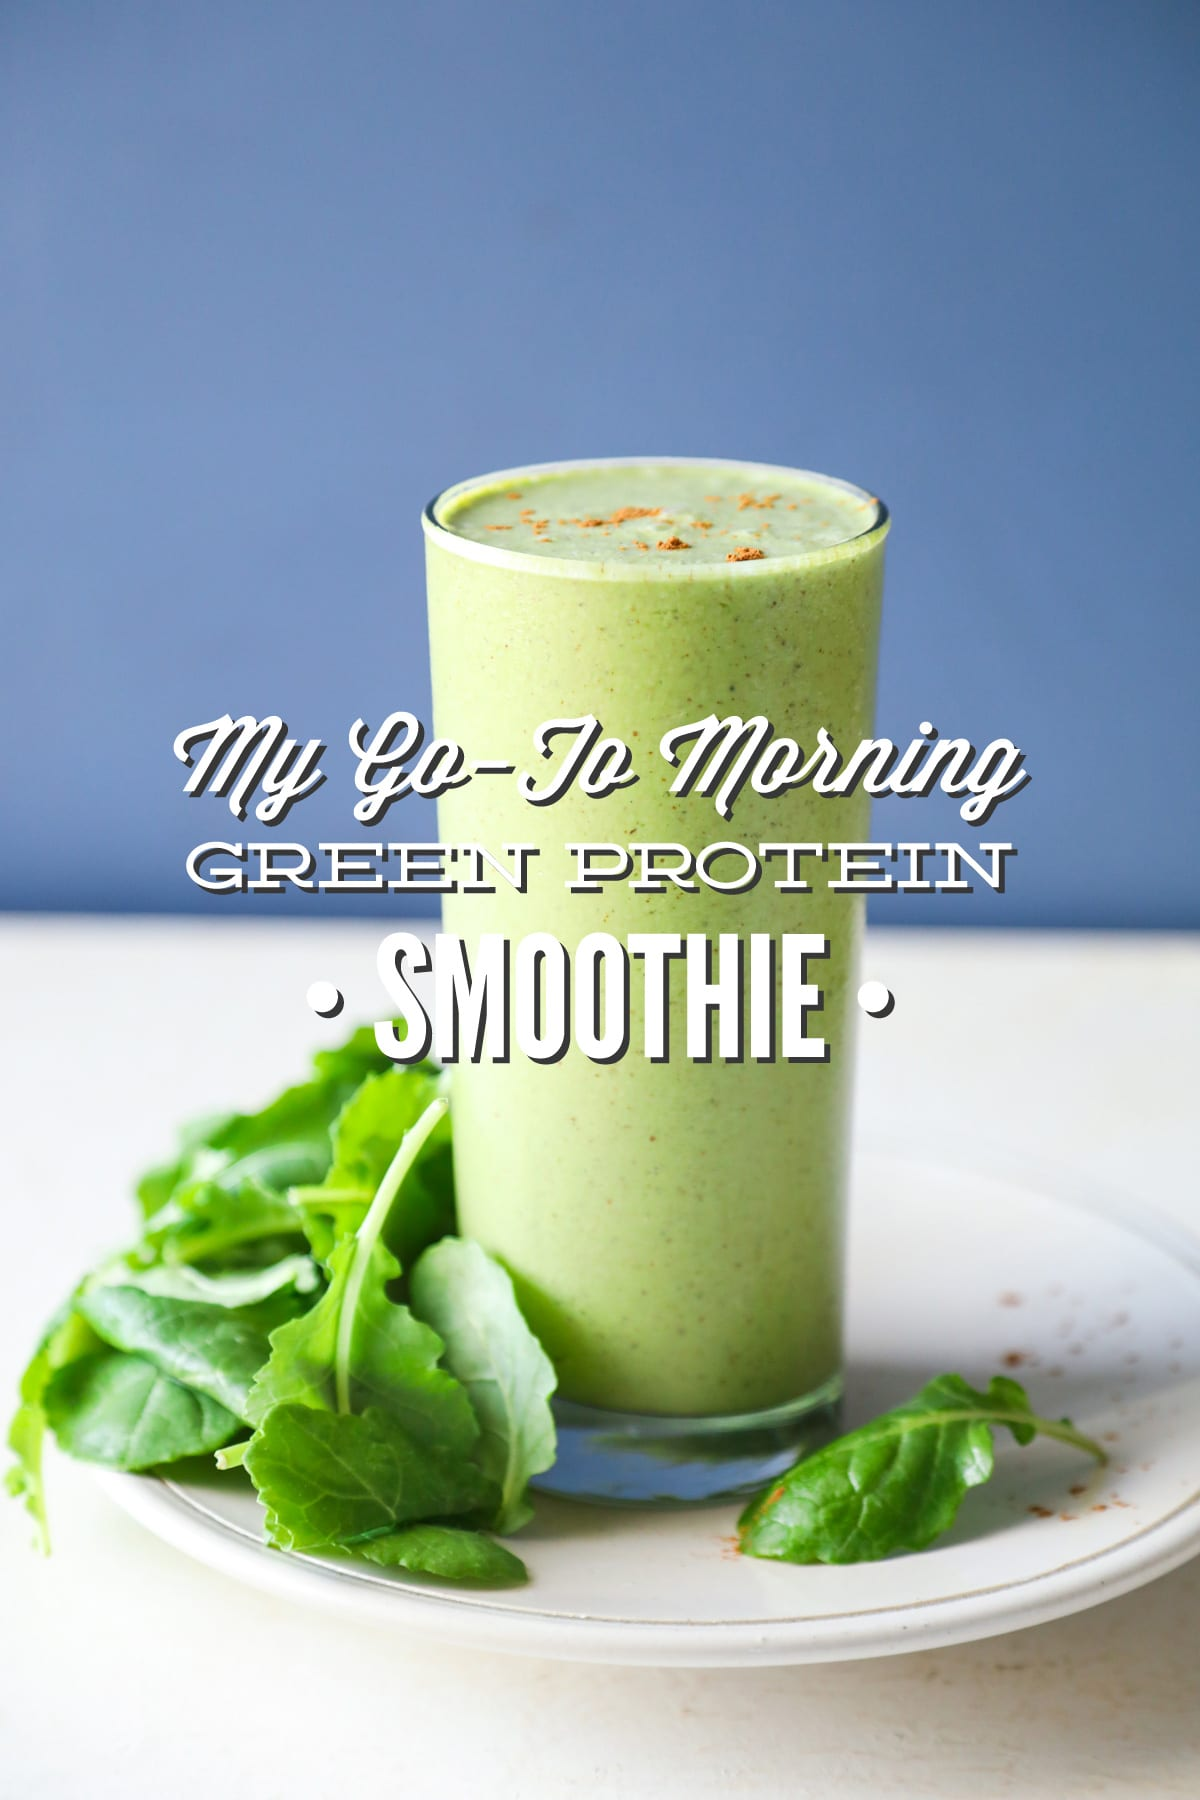 My Go-To Morning Green Protein Smoothie